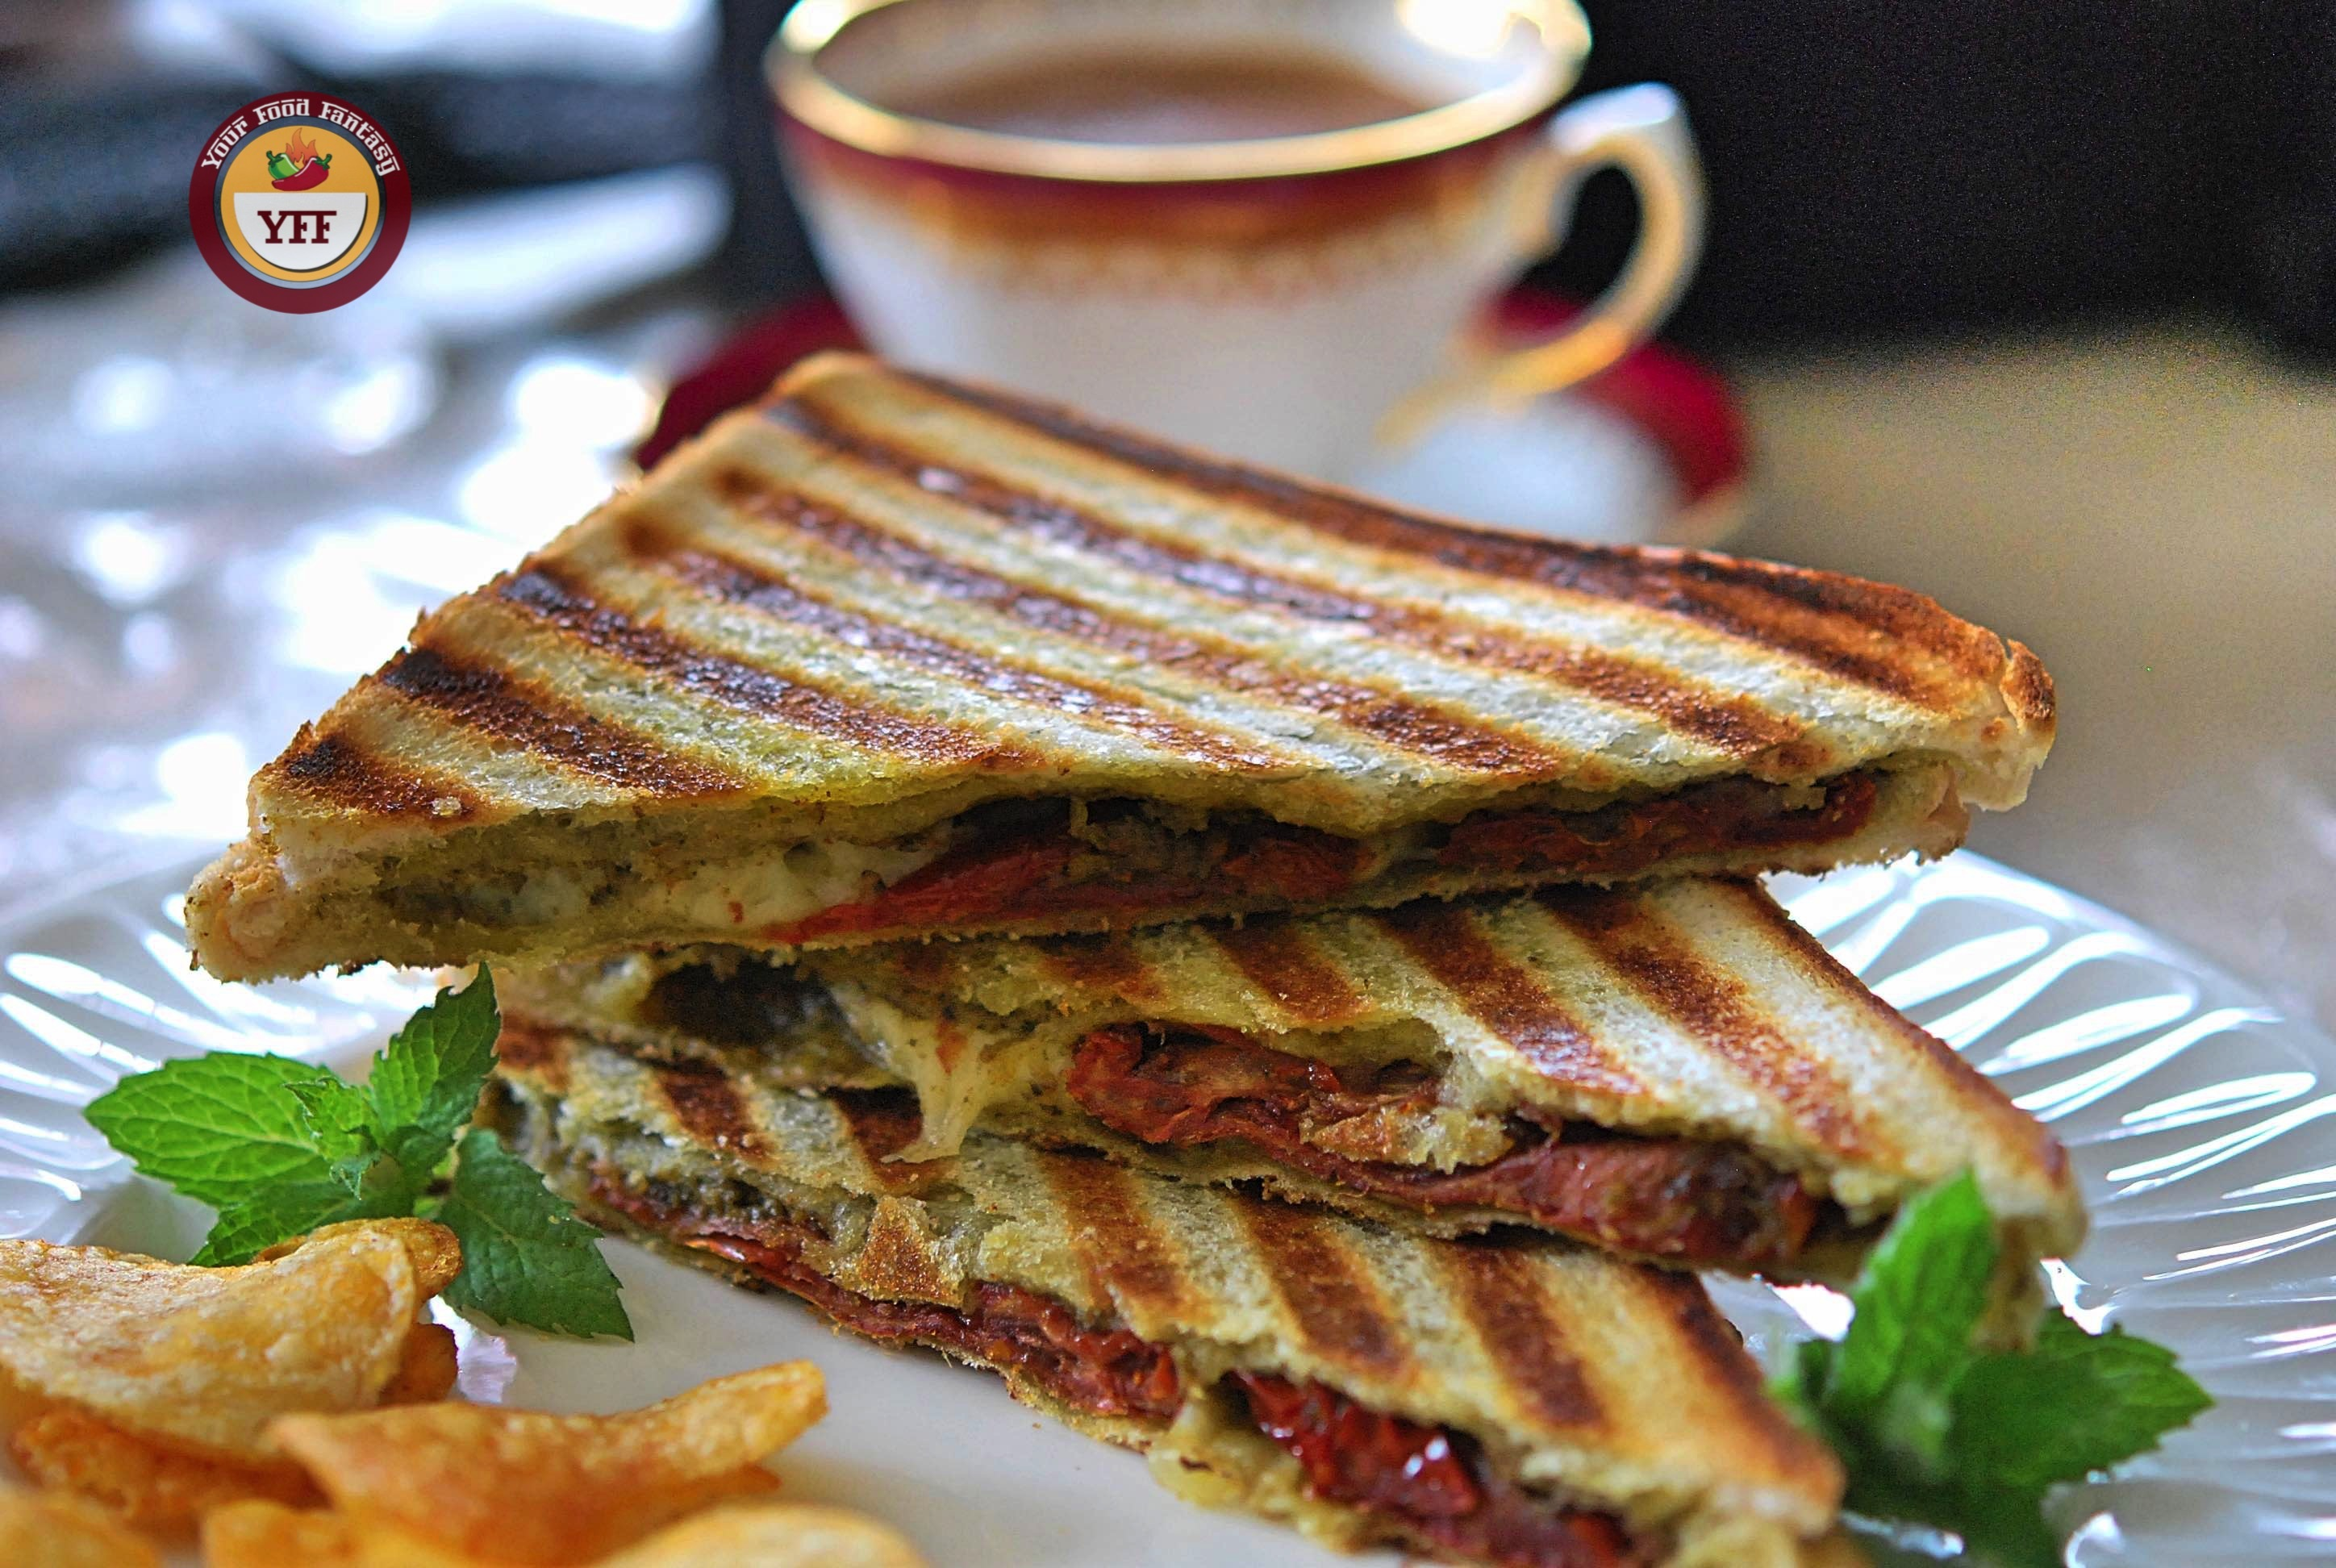 Sundried Tomatoes and Mozzarella Grilled Sandwich   Your Food Fantasy